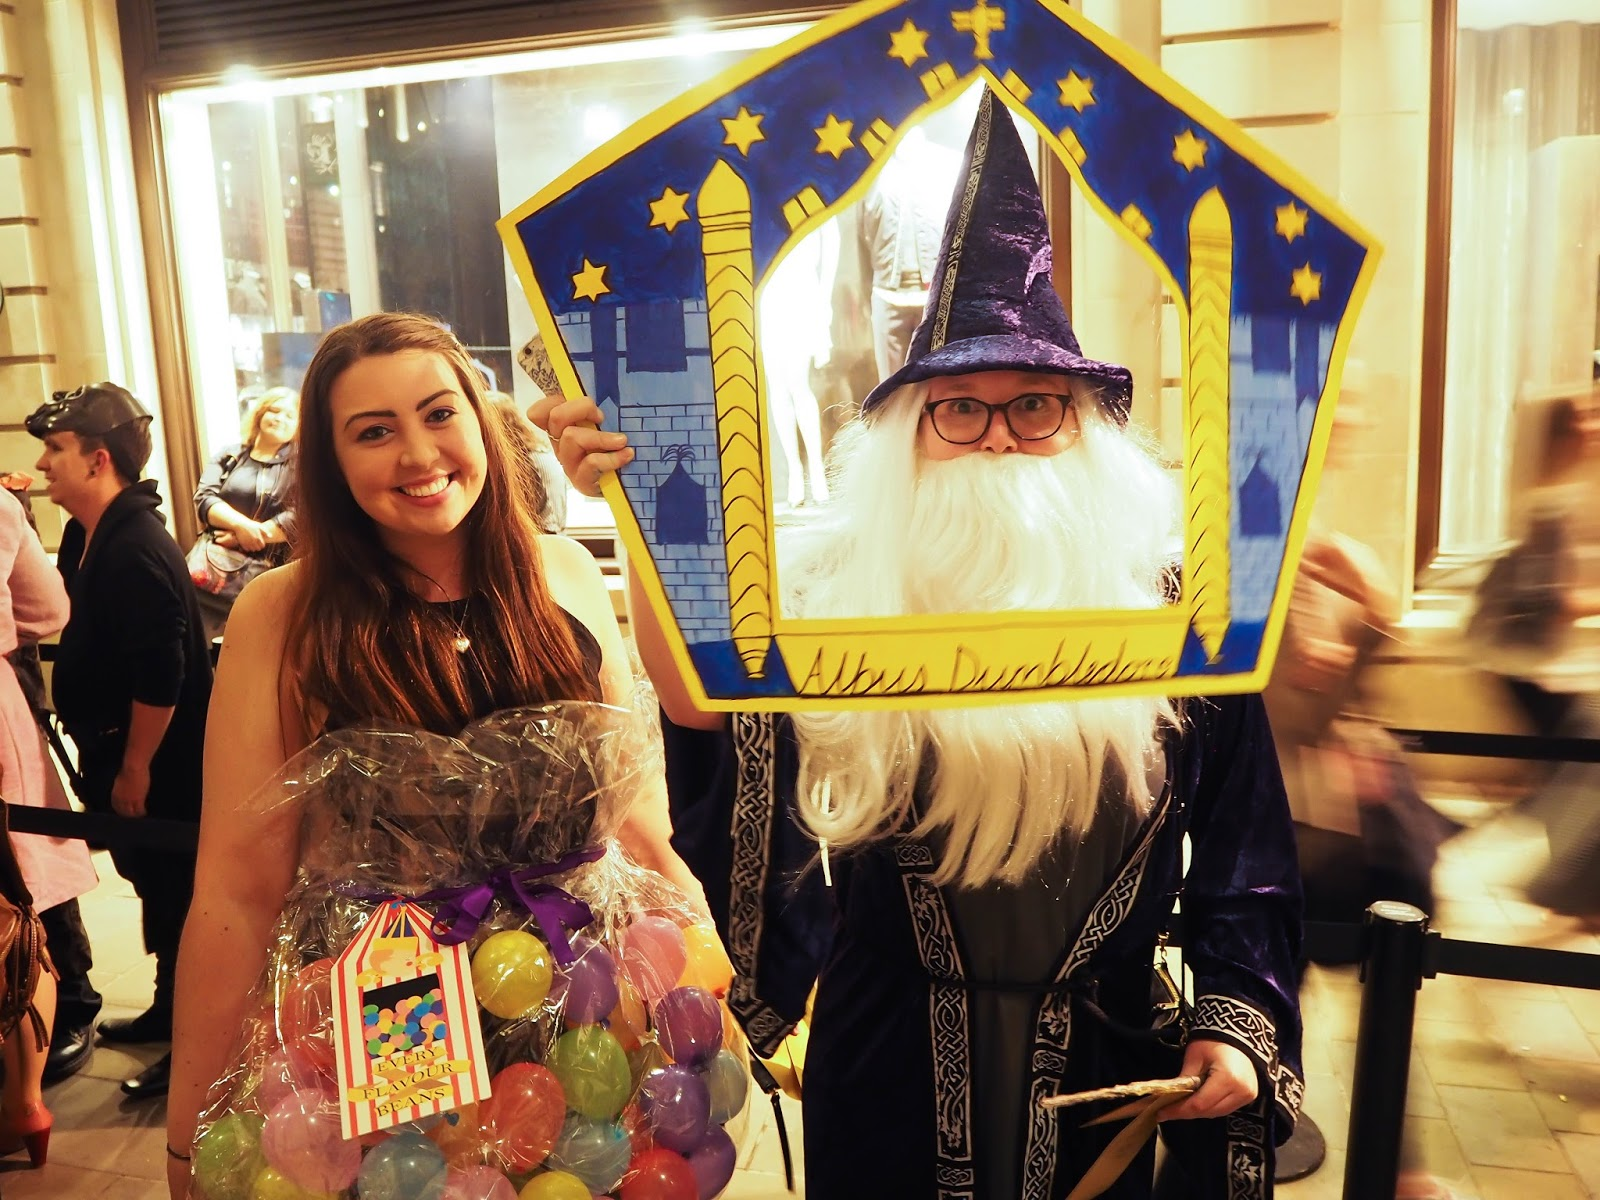 Harry Potter fancy dress. Bertie Bott's beans and Albus Dumbledore